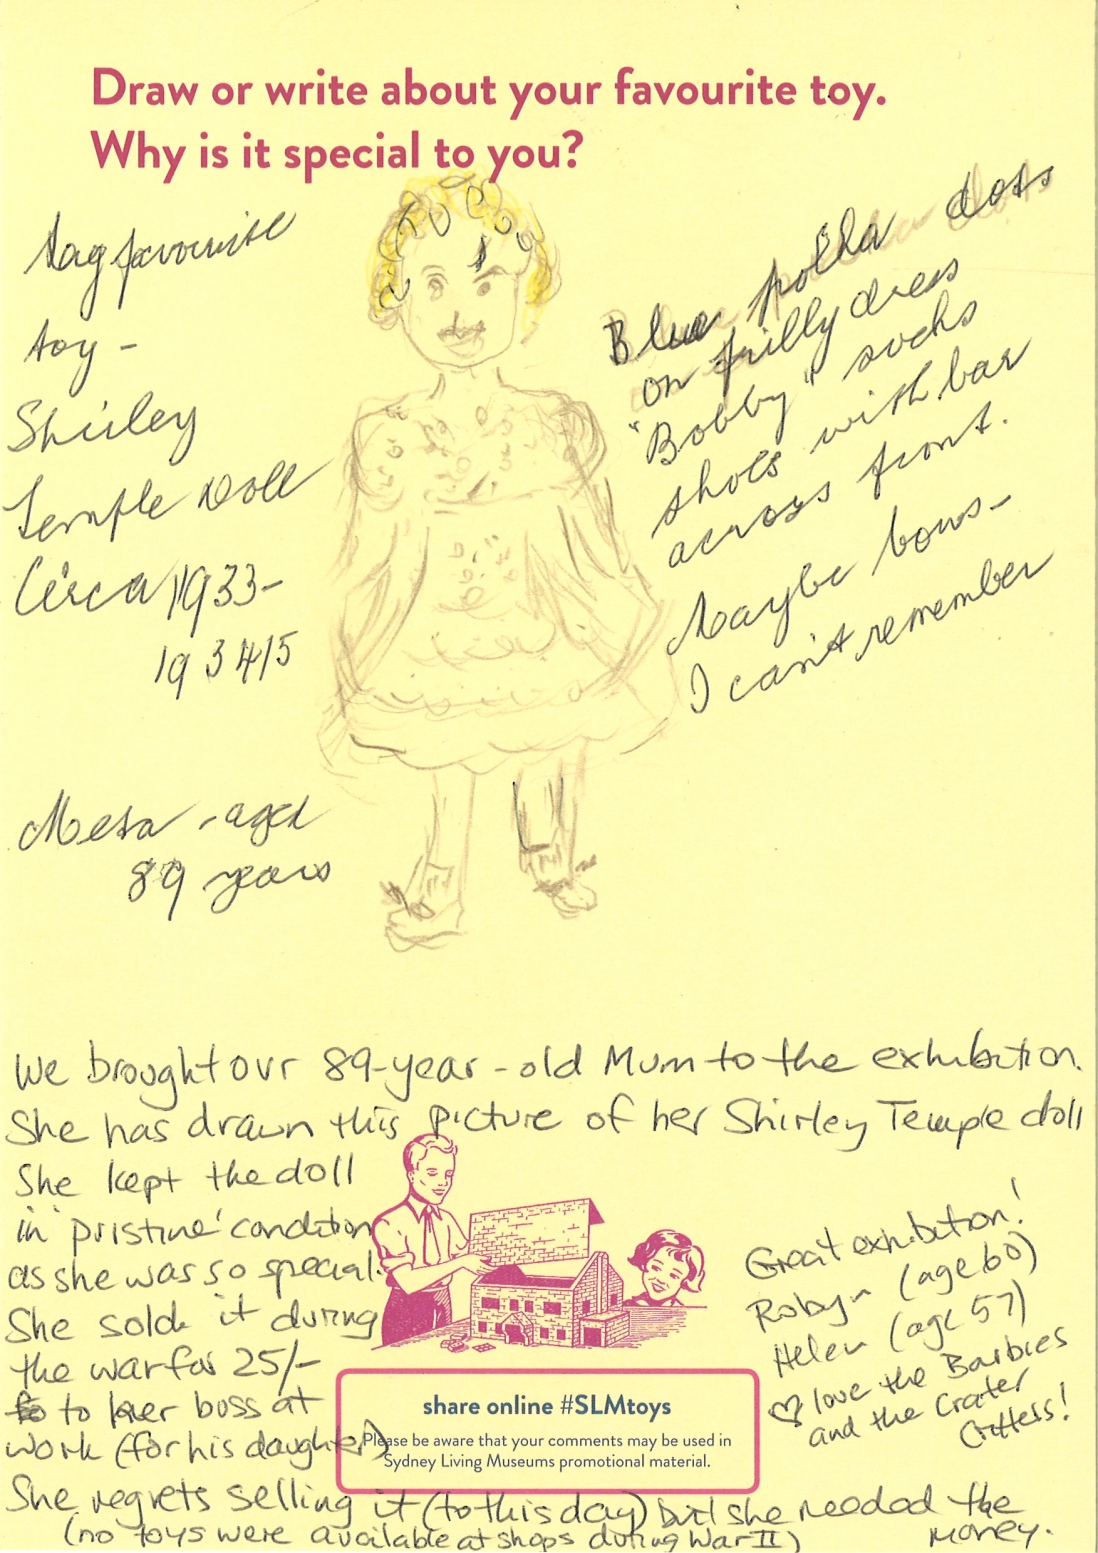 A drawing and description of a Shirley Temple doll